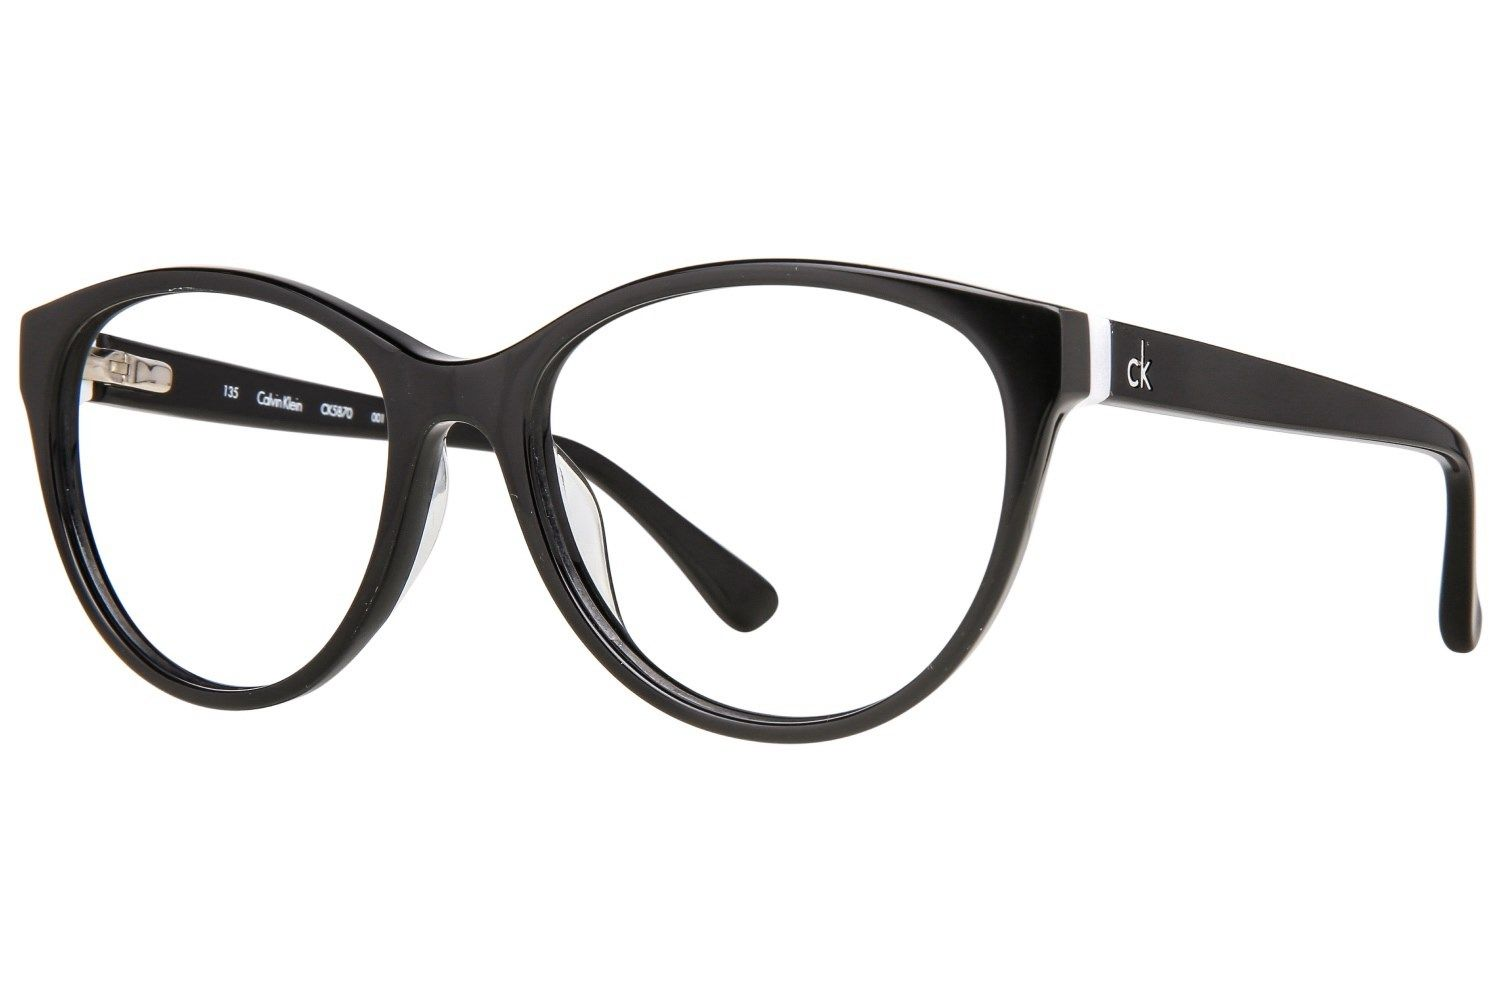 a9129c408e Calvin Klein Ck 5870 - Women s Eyeglasses At America s Best Contacts    Eyeglasses